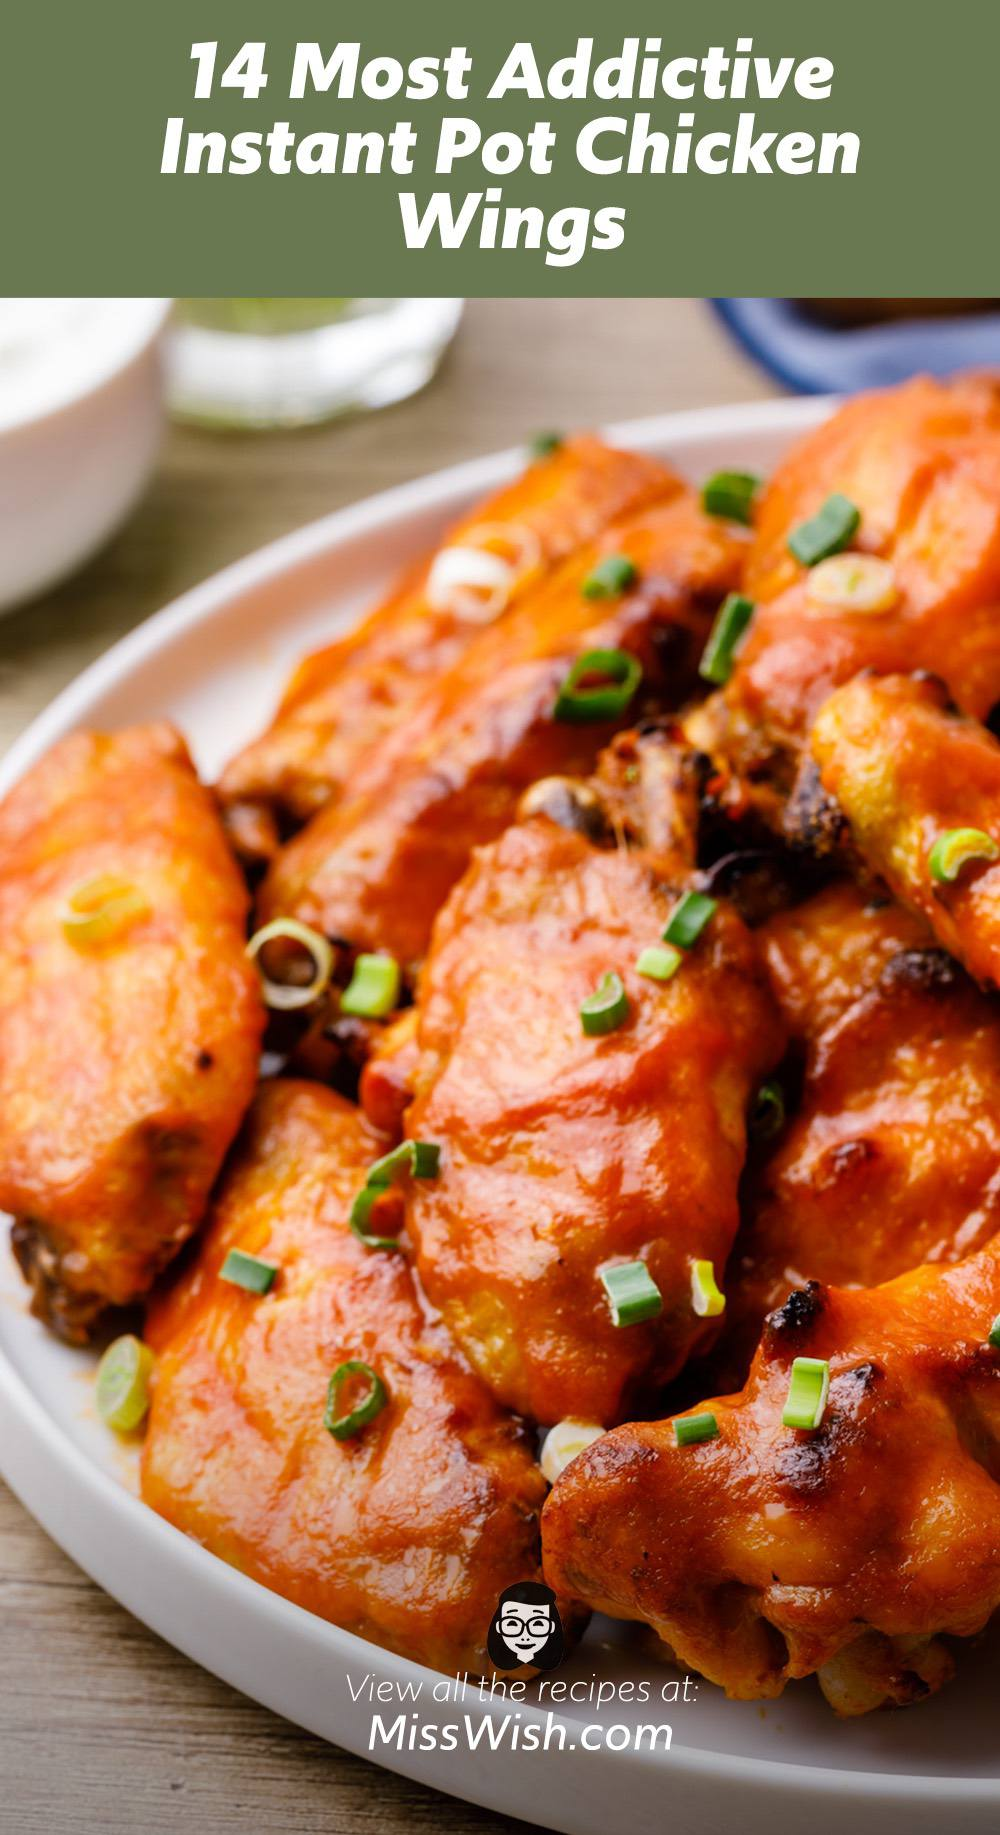 14 Most Addictive Instant Pot Chicken Wings